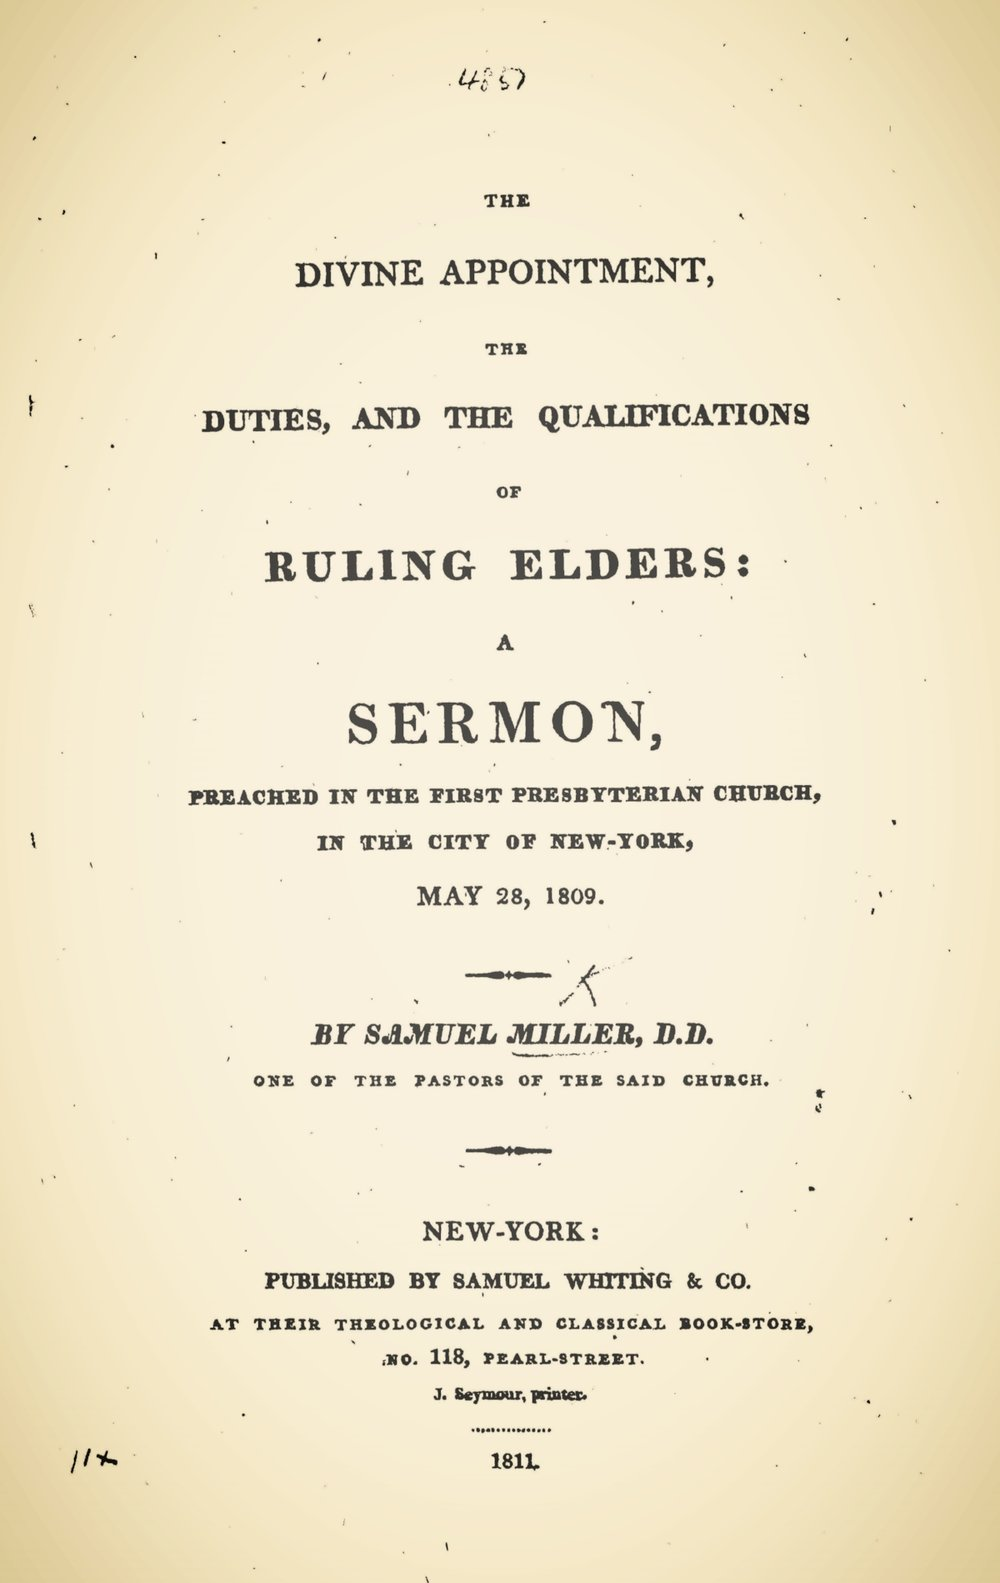 Miller, Samuel, The Divine Appointment, the Duties, and the Qualifications of Ruling Elders Title Page.jpg